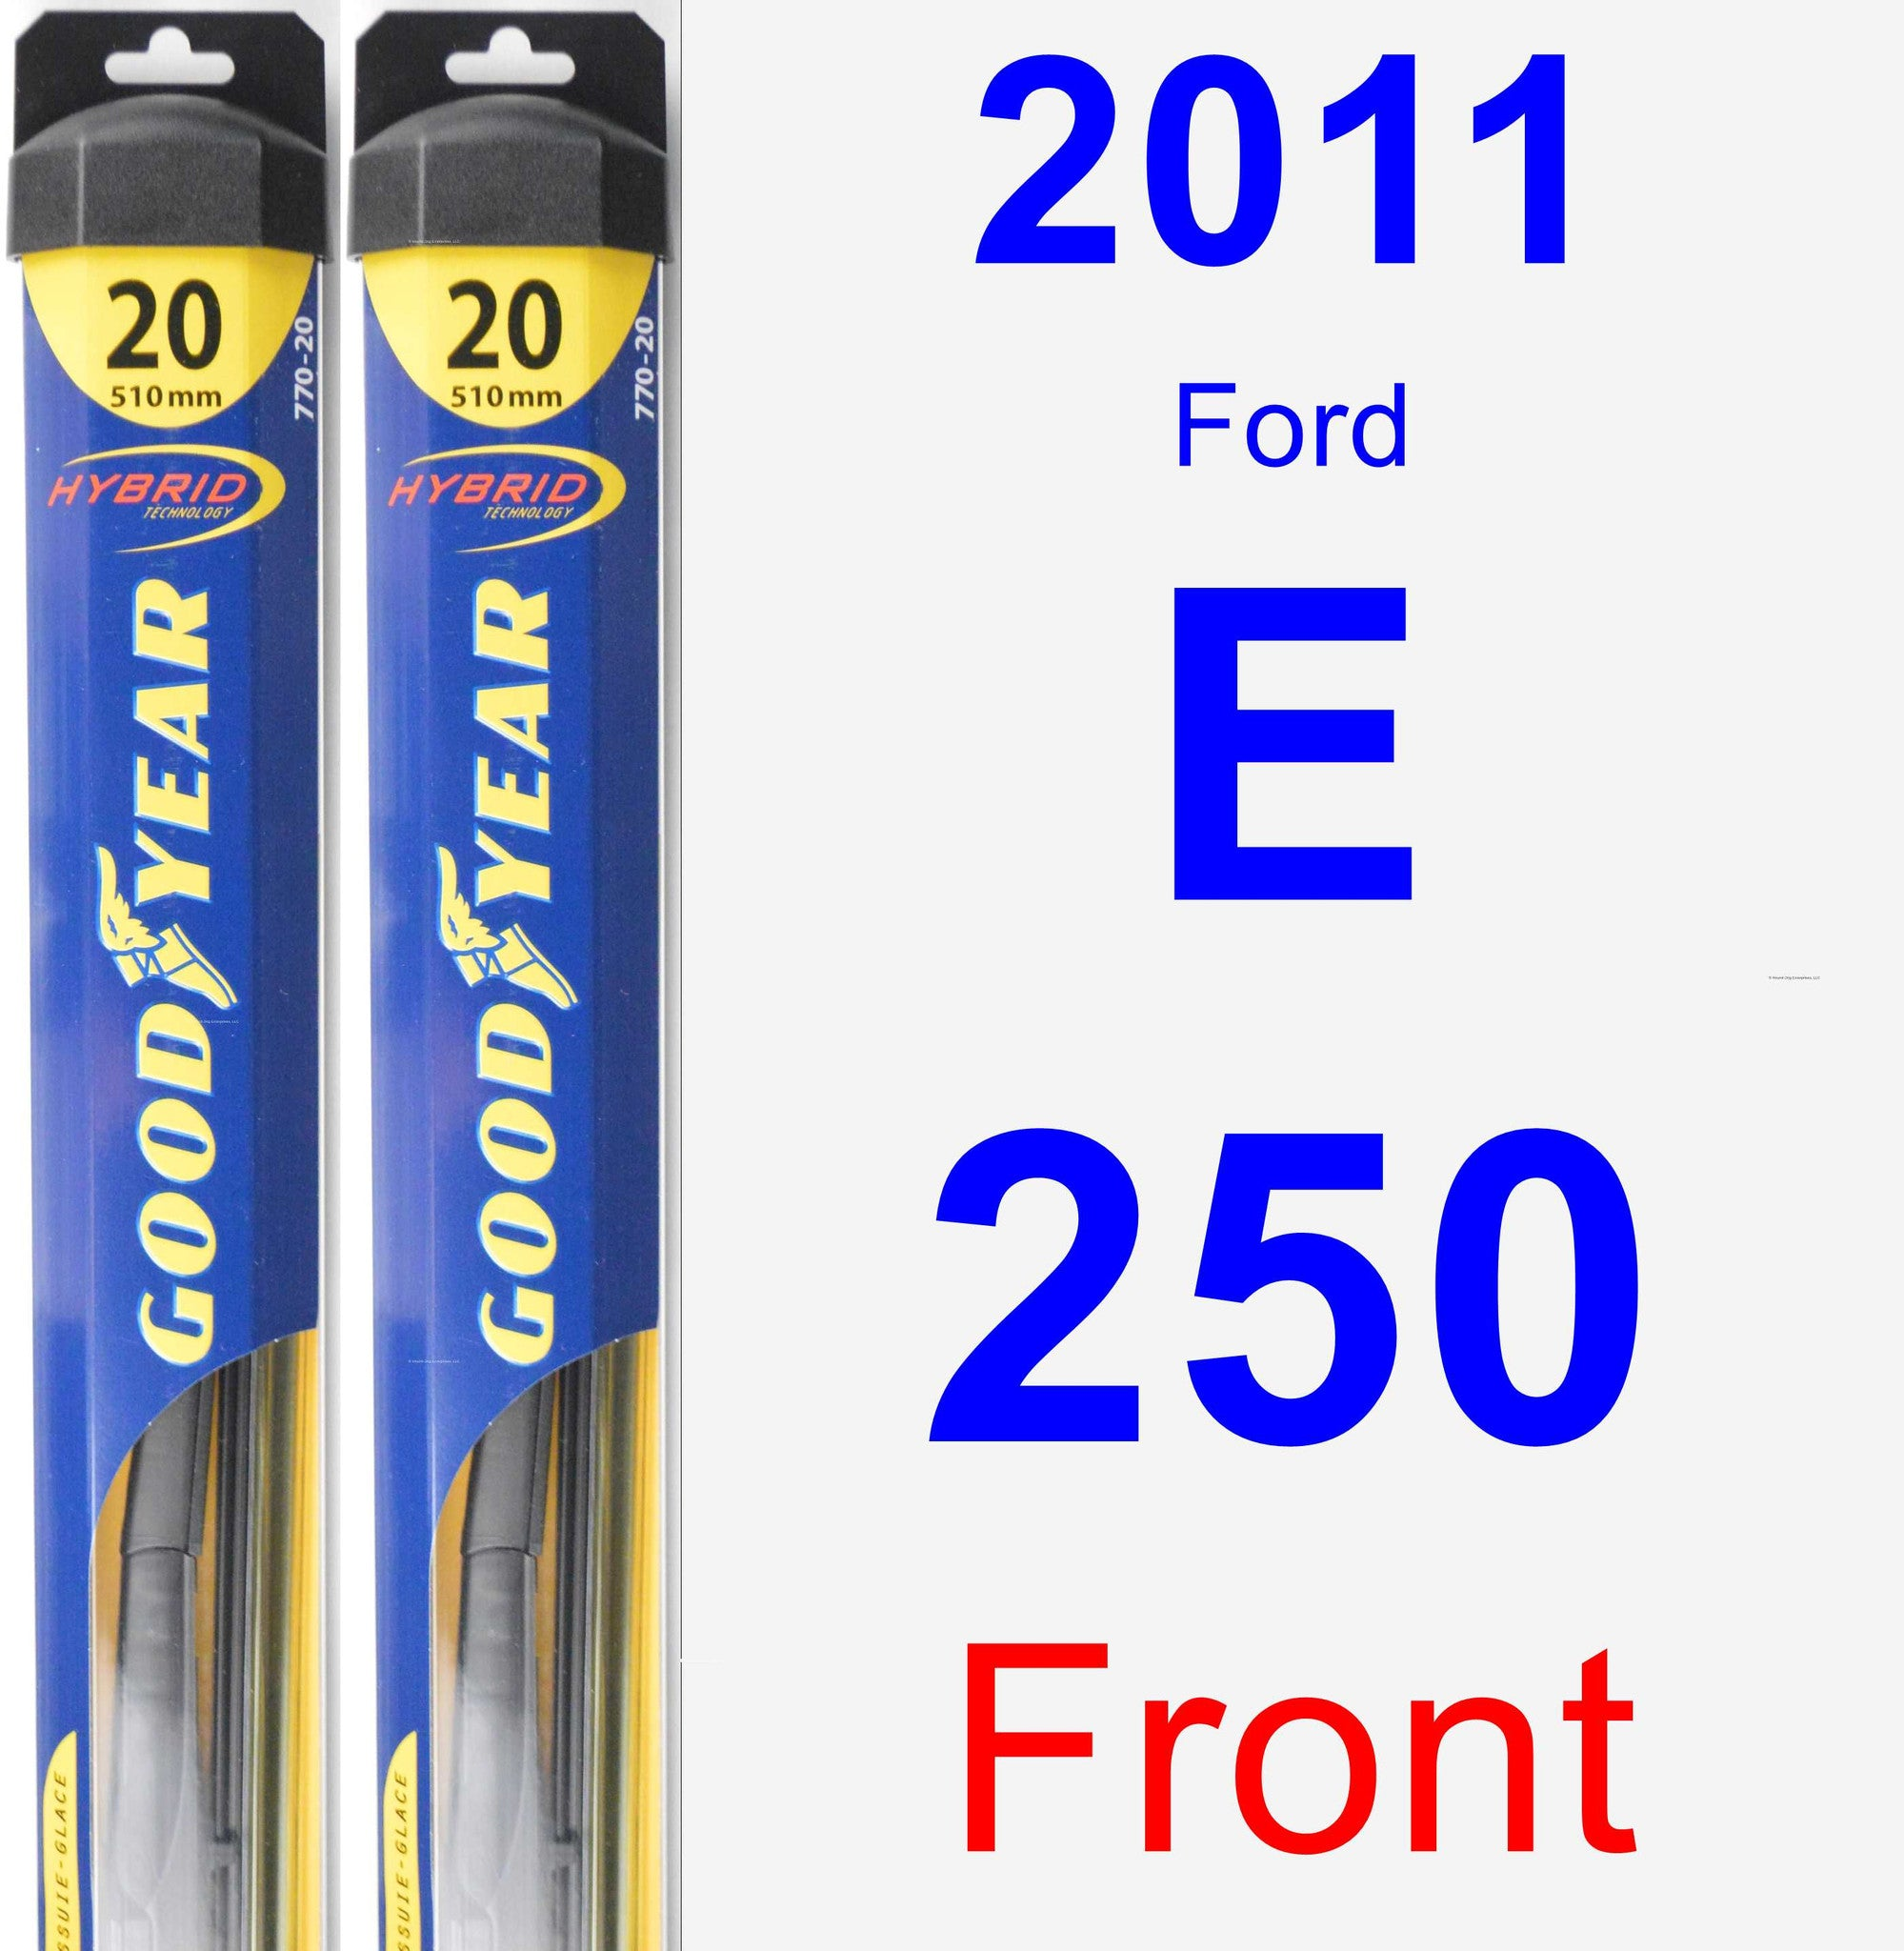 Front Wiper Blade Pack for 2011 Ford E-250 - Hybrid